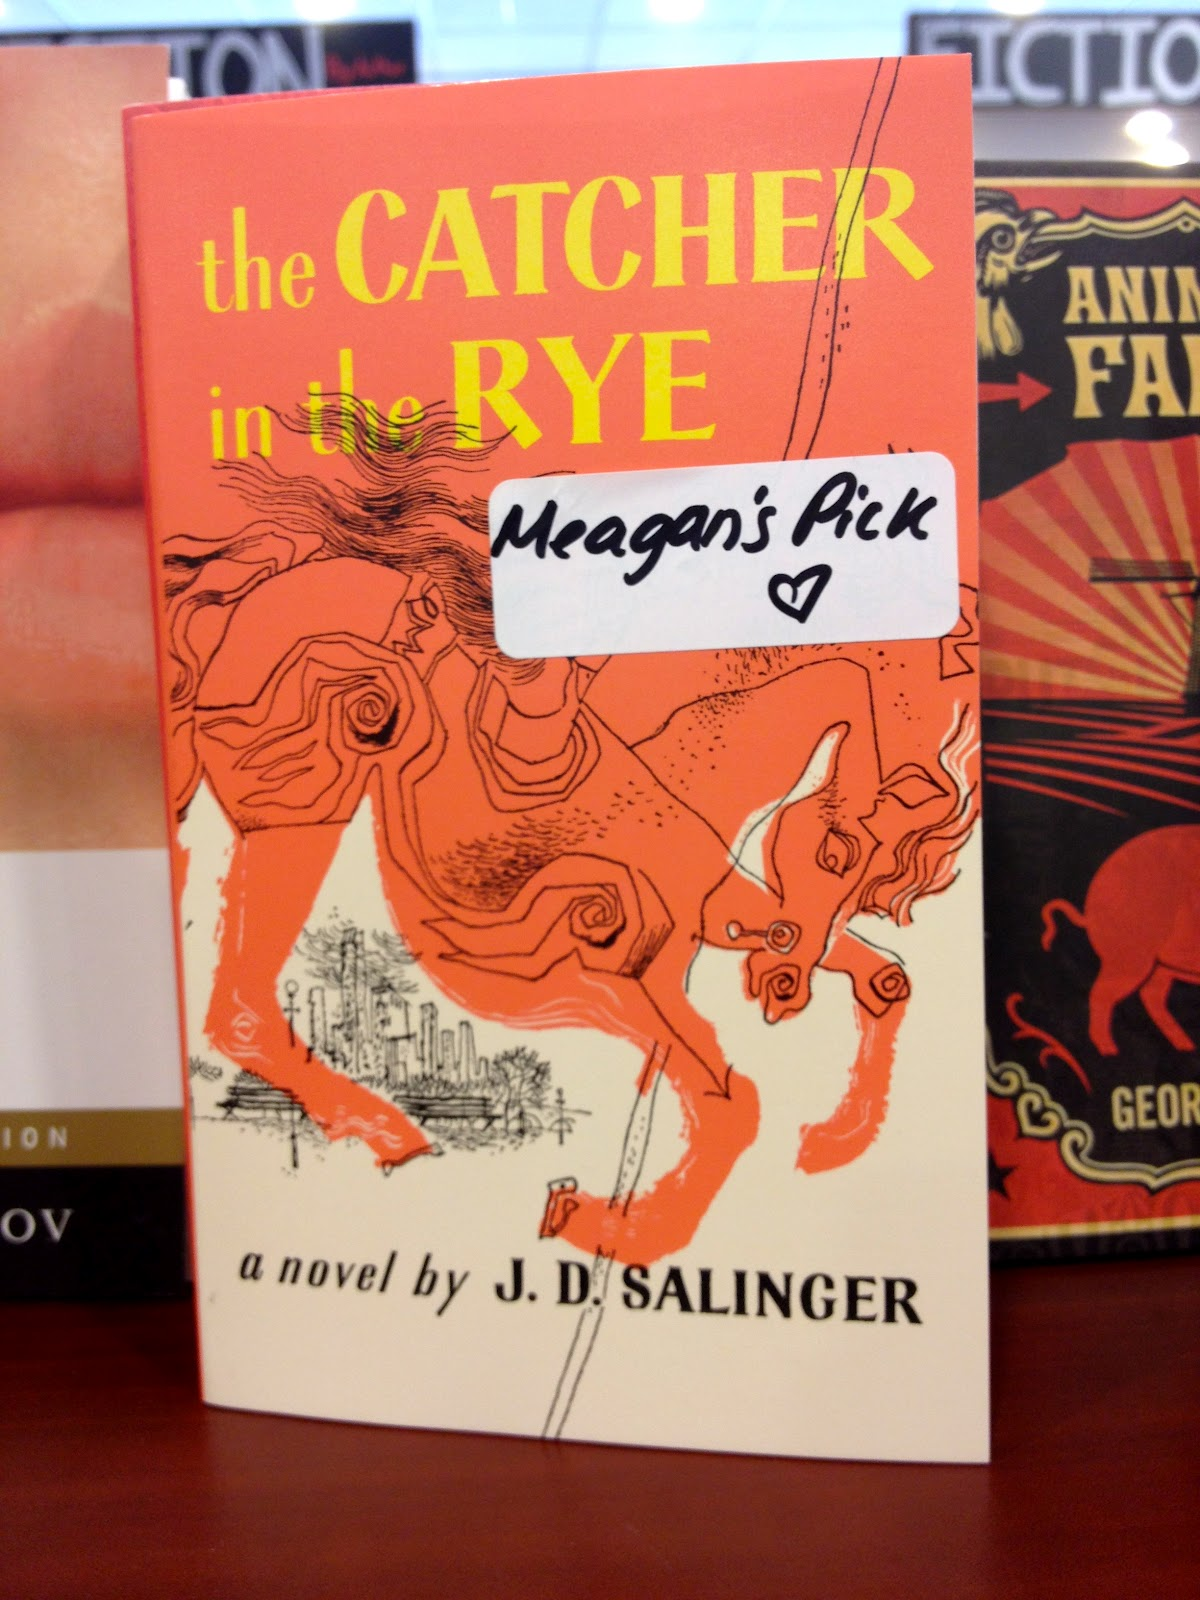 is holden caulfield relatable Most teens are trying to grow up too fast just as holden caulfield did in  i feel  like holden's journey into the world is extremely relatable.